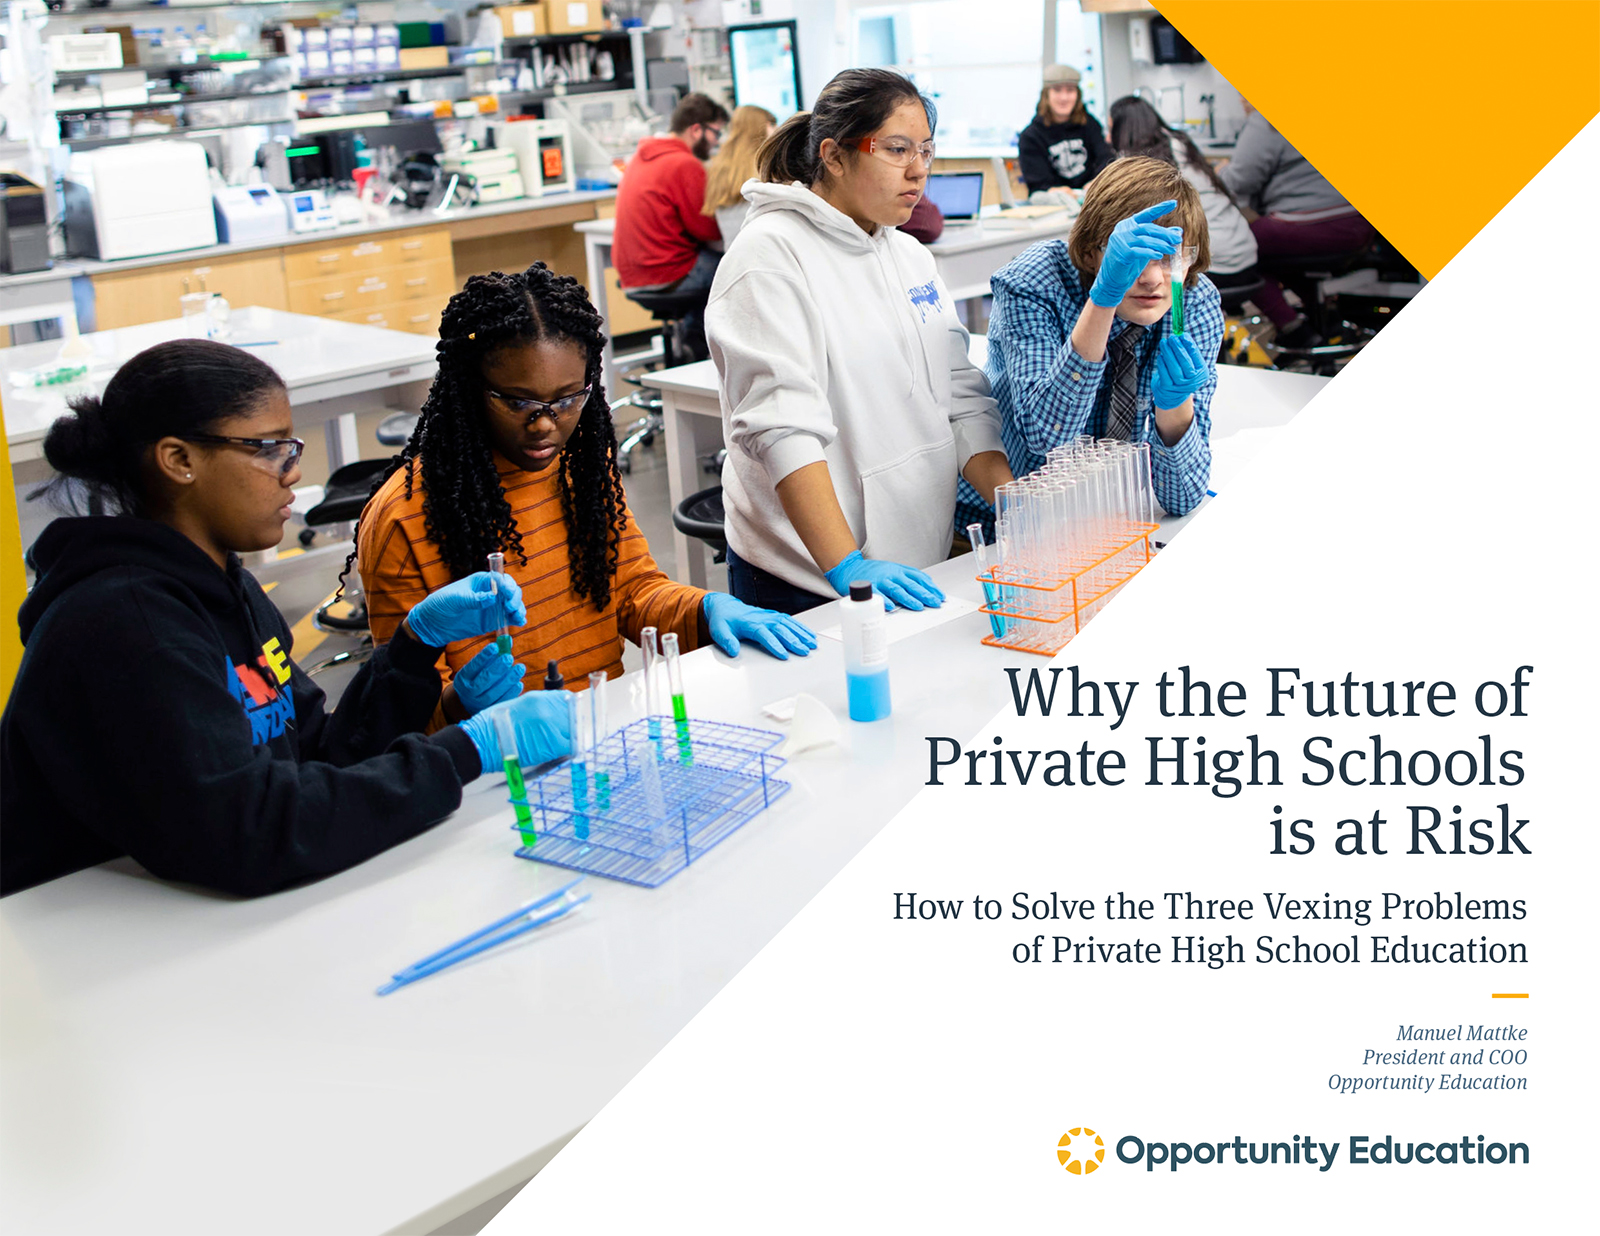 """The cover of the ebook by Opportunity Education, titled """"Why the Future of Private High Schools is at Risk."""""""